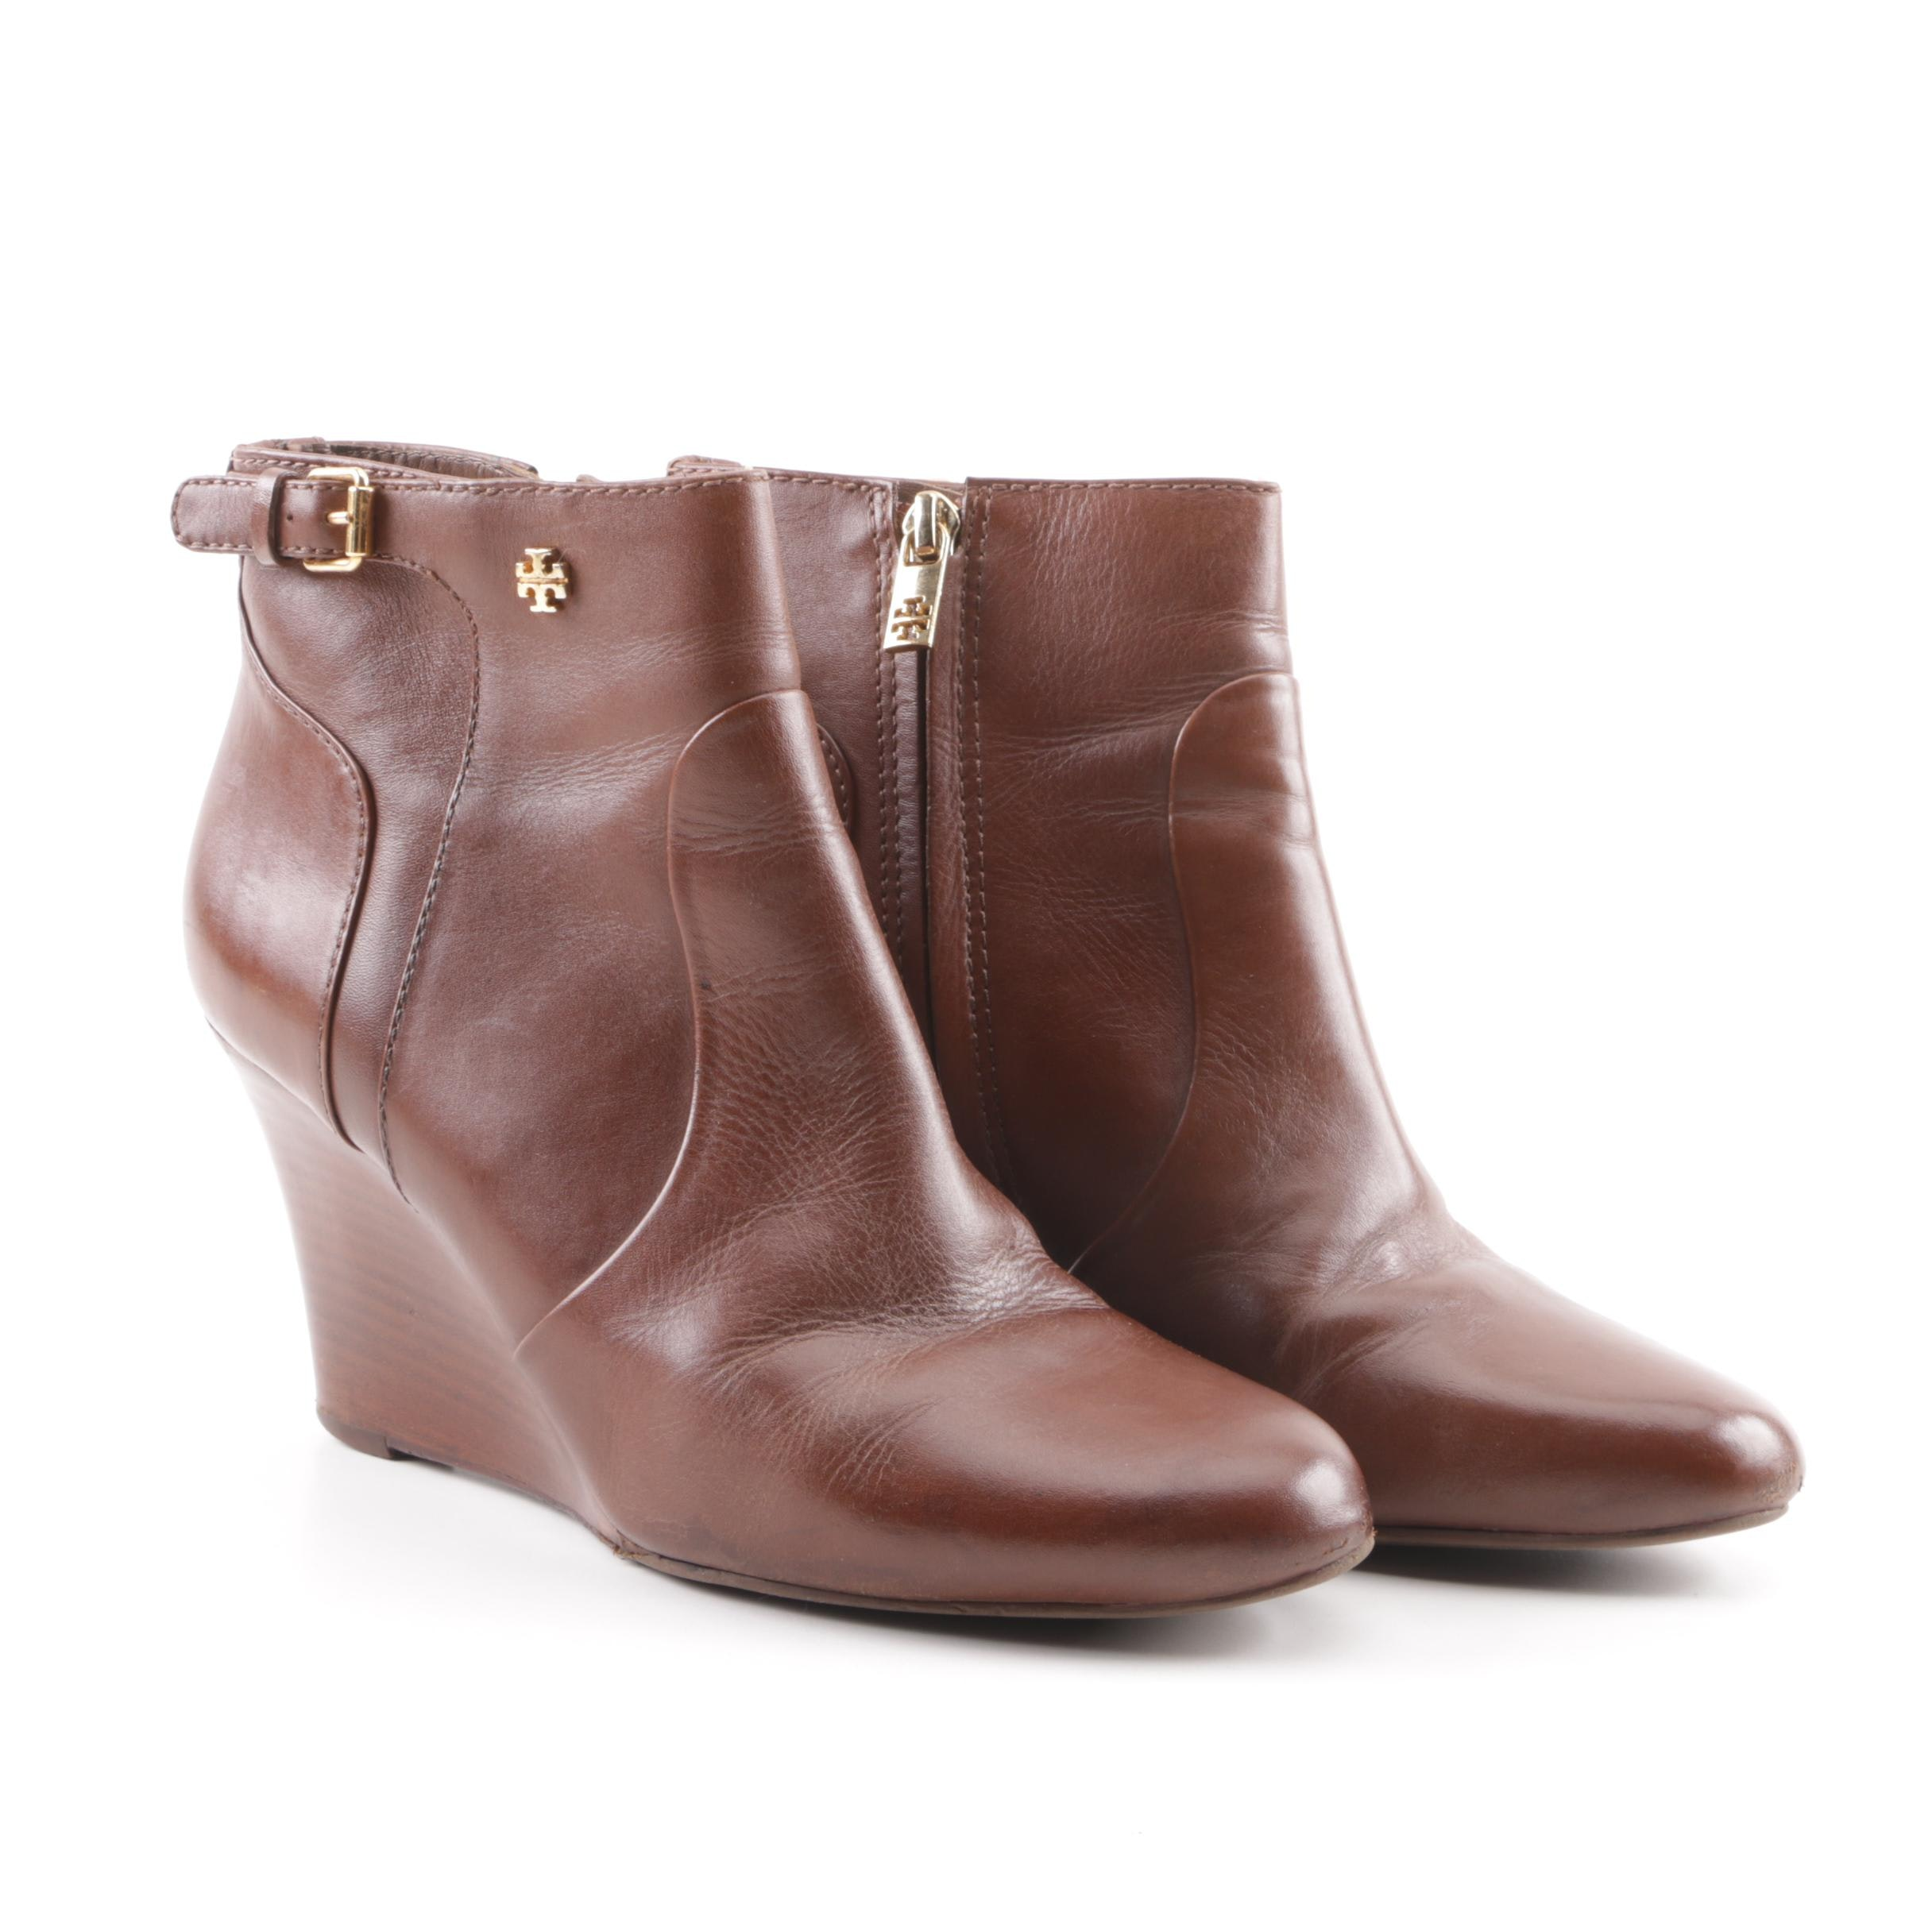 Tory Burch Brown Leather Wedge Ankle Booties